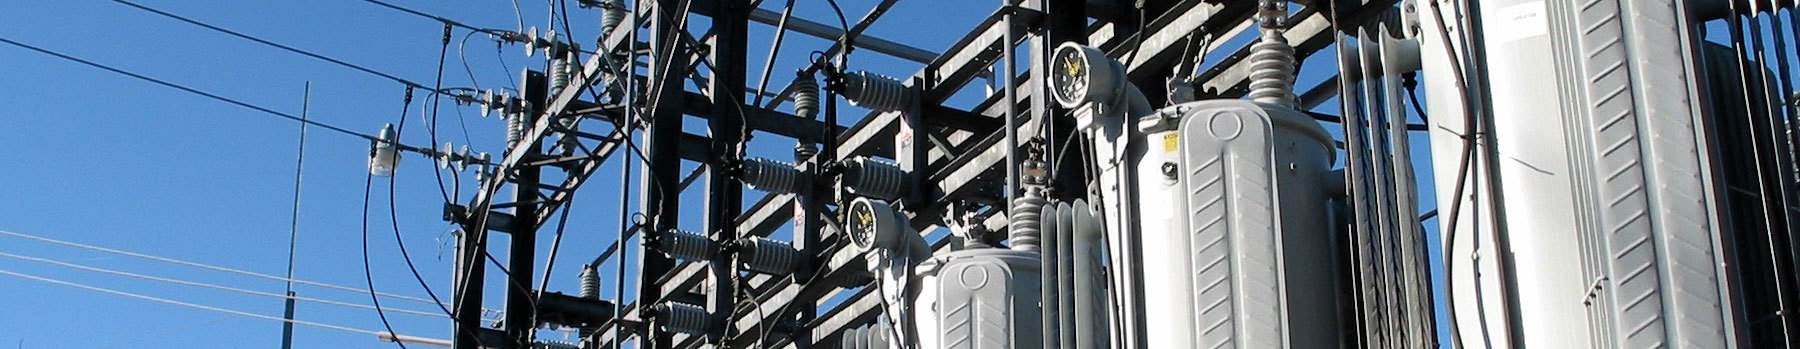 Hero_iSt_489807_M_Electric-Power-Substation